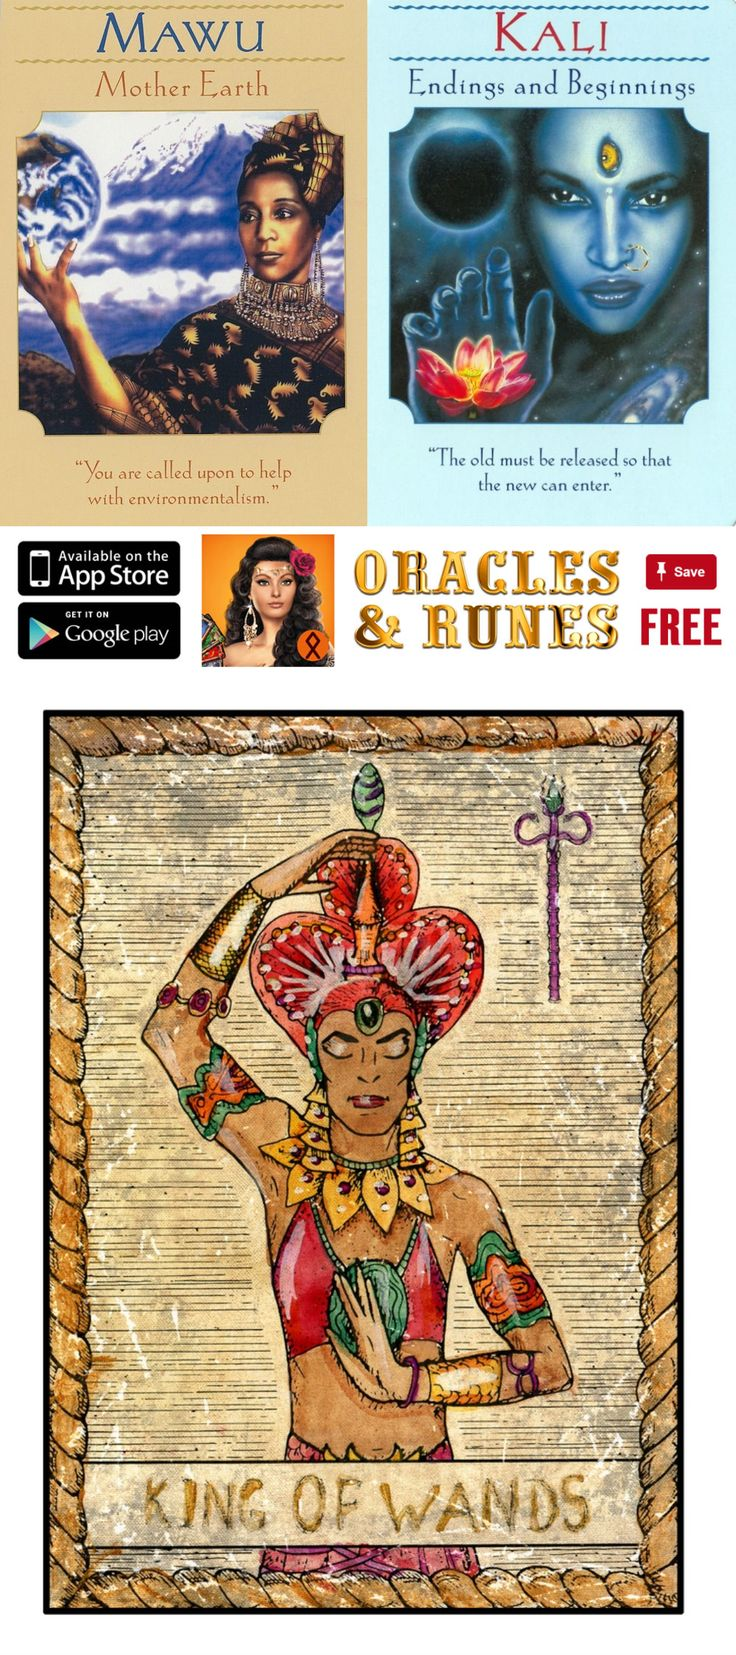 ✯ Get the FREE application on your iOS and Android device and relish. accurate tarot reading, divination tarot latin and forms of divination, tarot gratuit en ligne and tarot horoscope. The best witch costume and psychic readings medium.